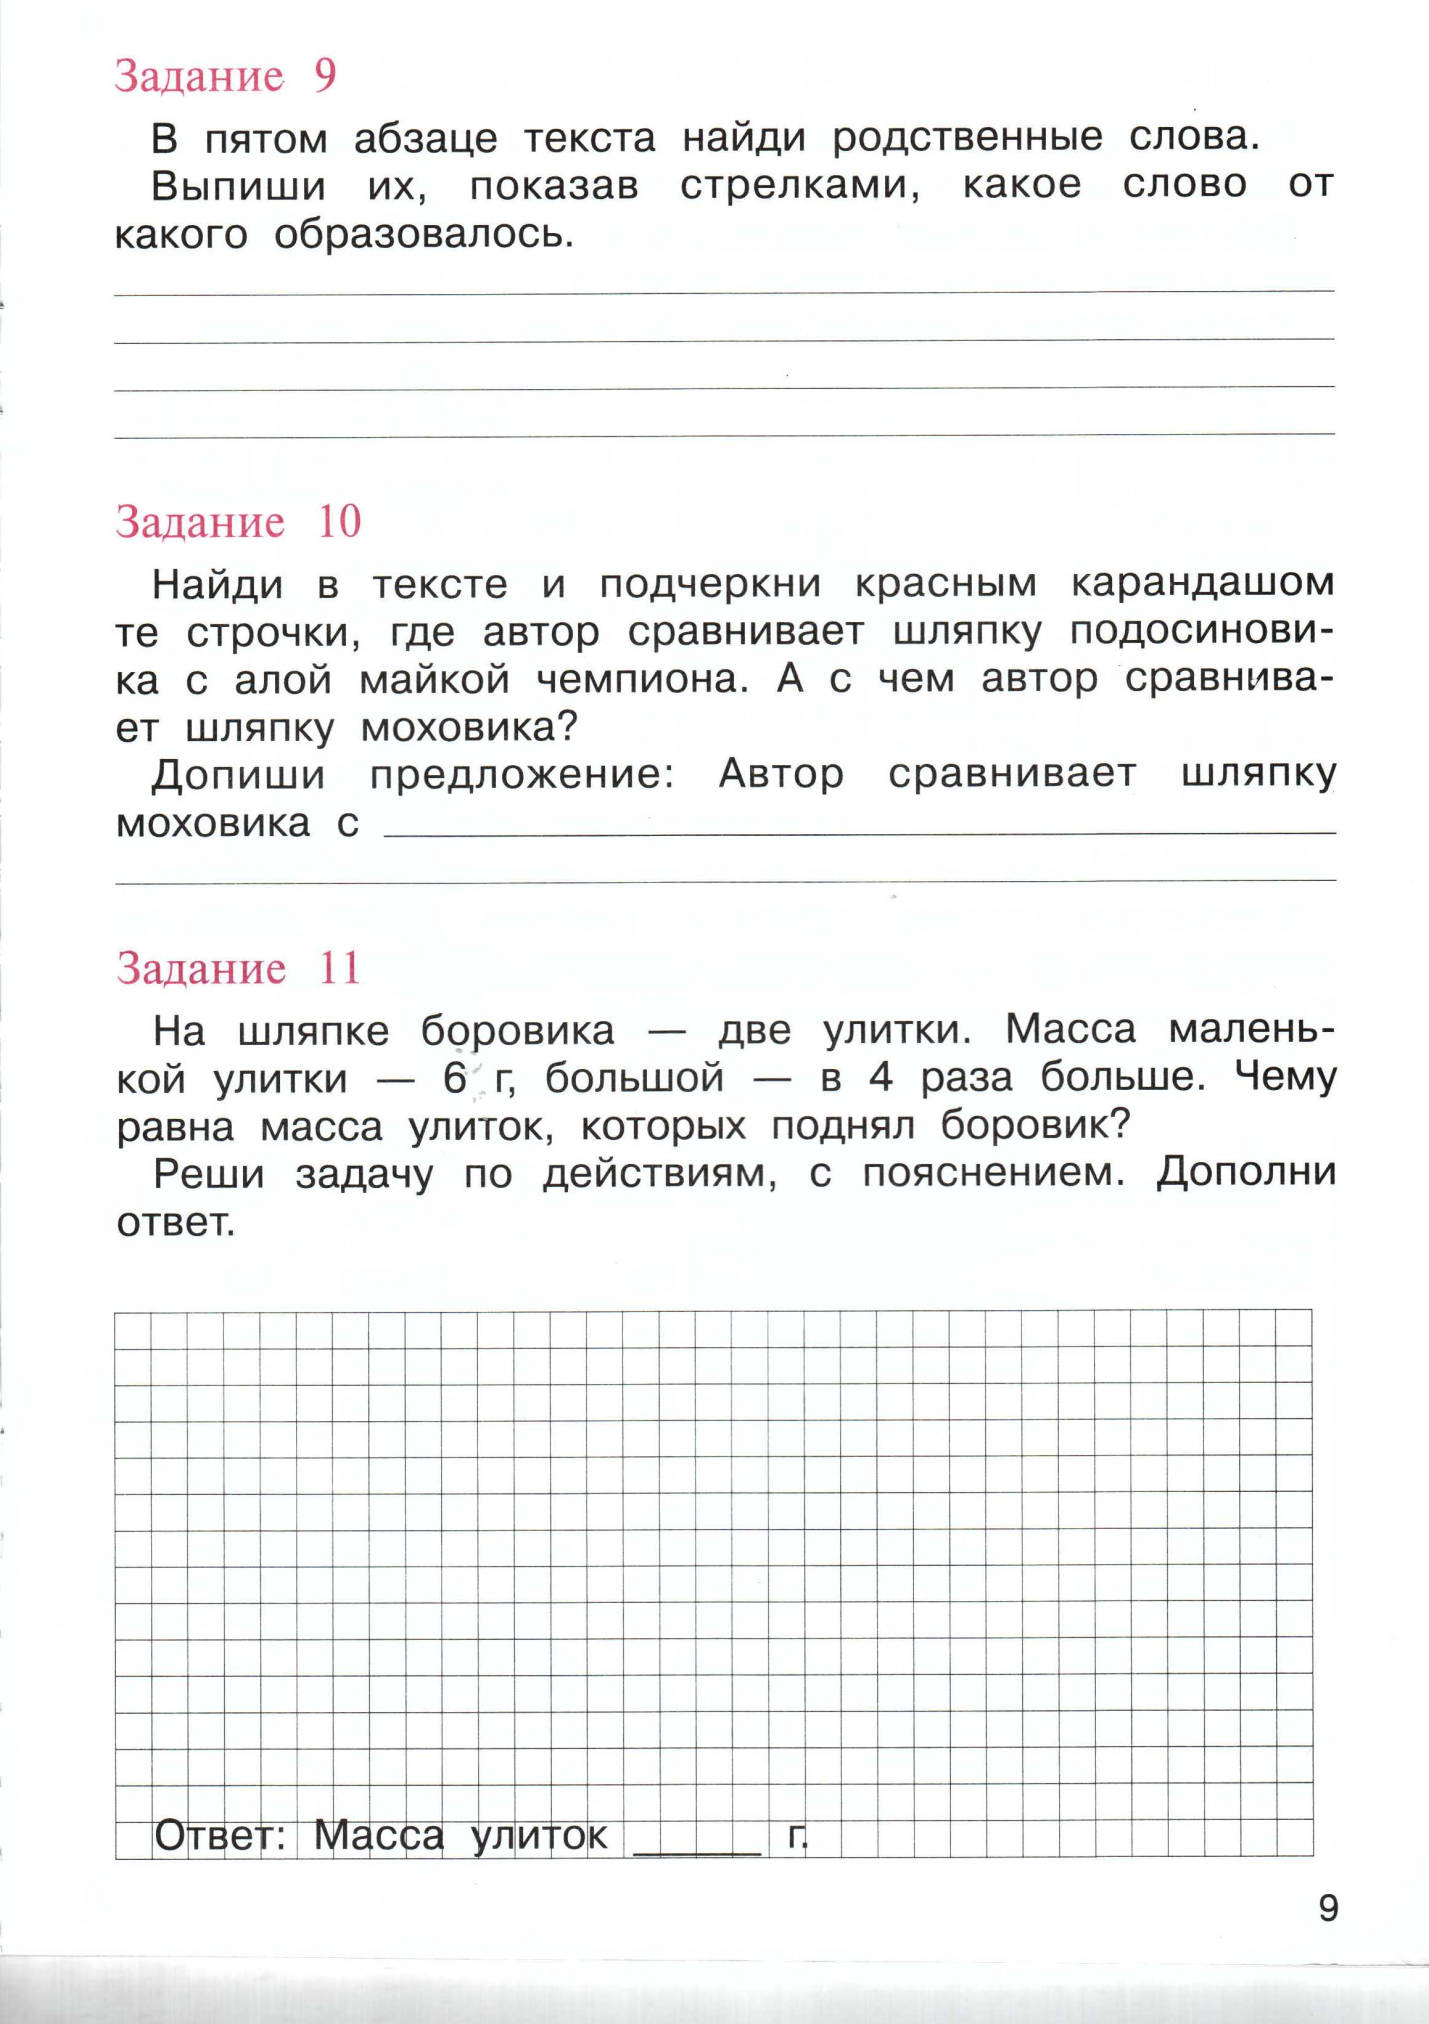 Oxford team workbook 2 ответы онлайн